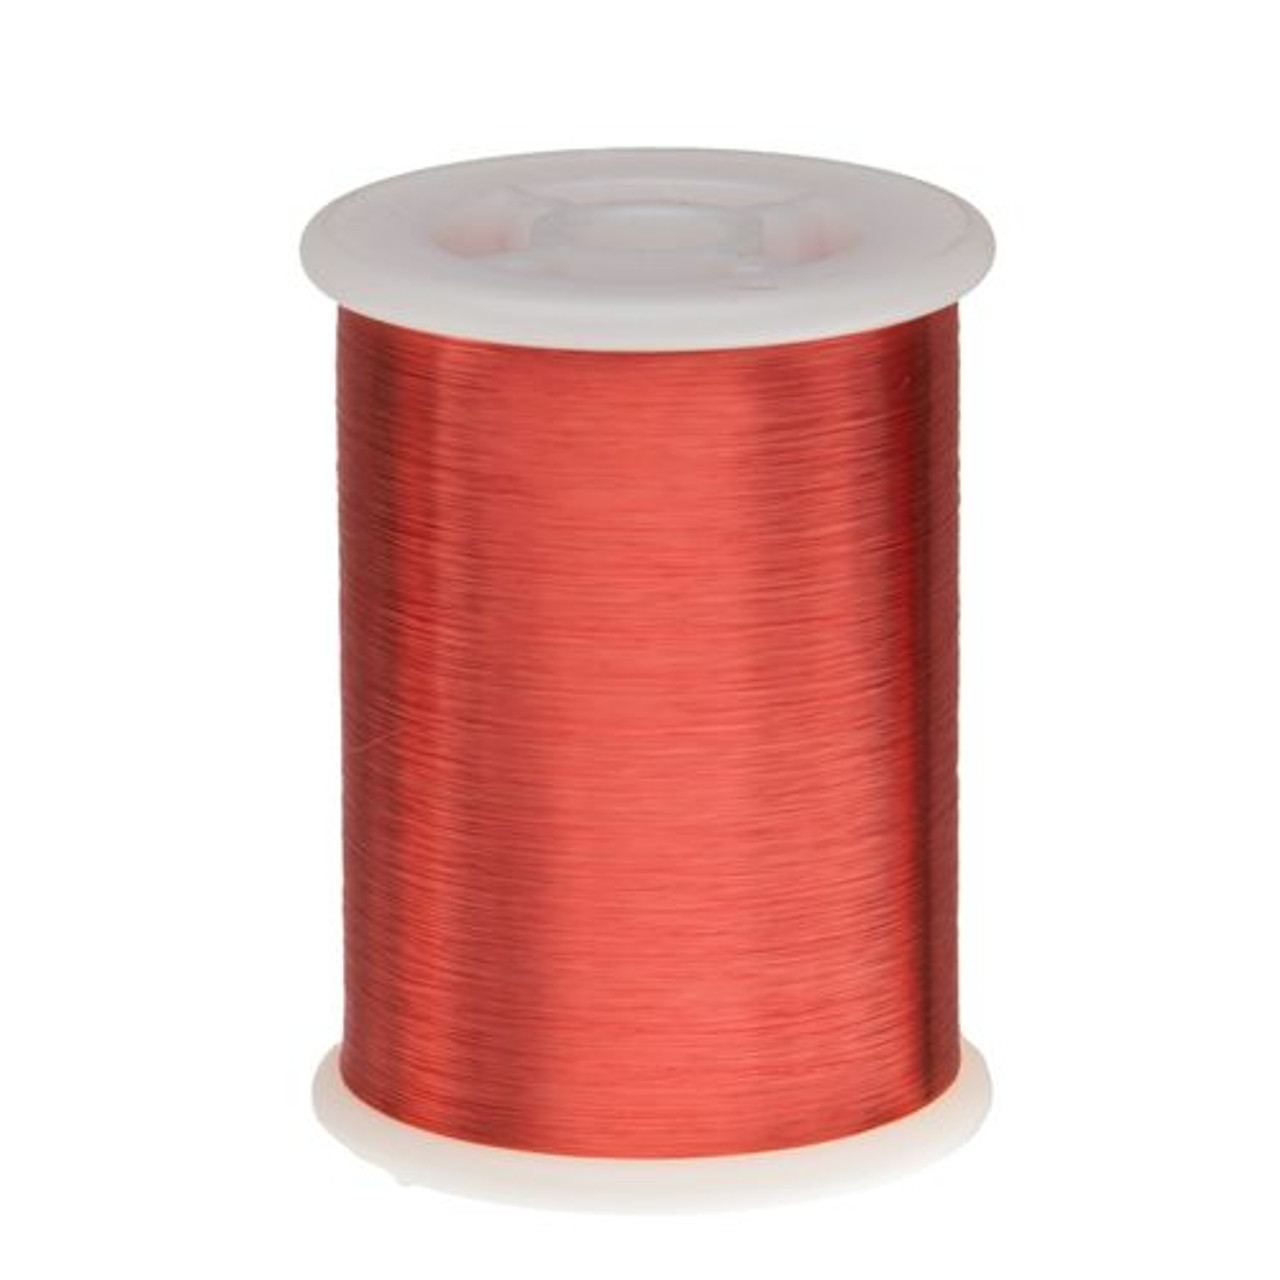 Magnet Wire - 43AWG Poly-coated (1/2 lbs)